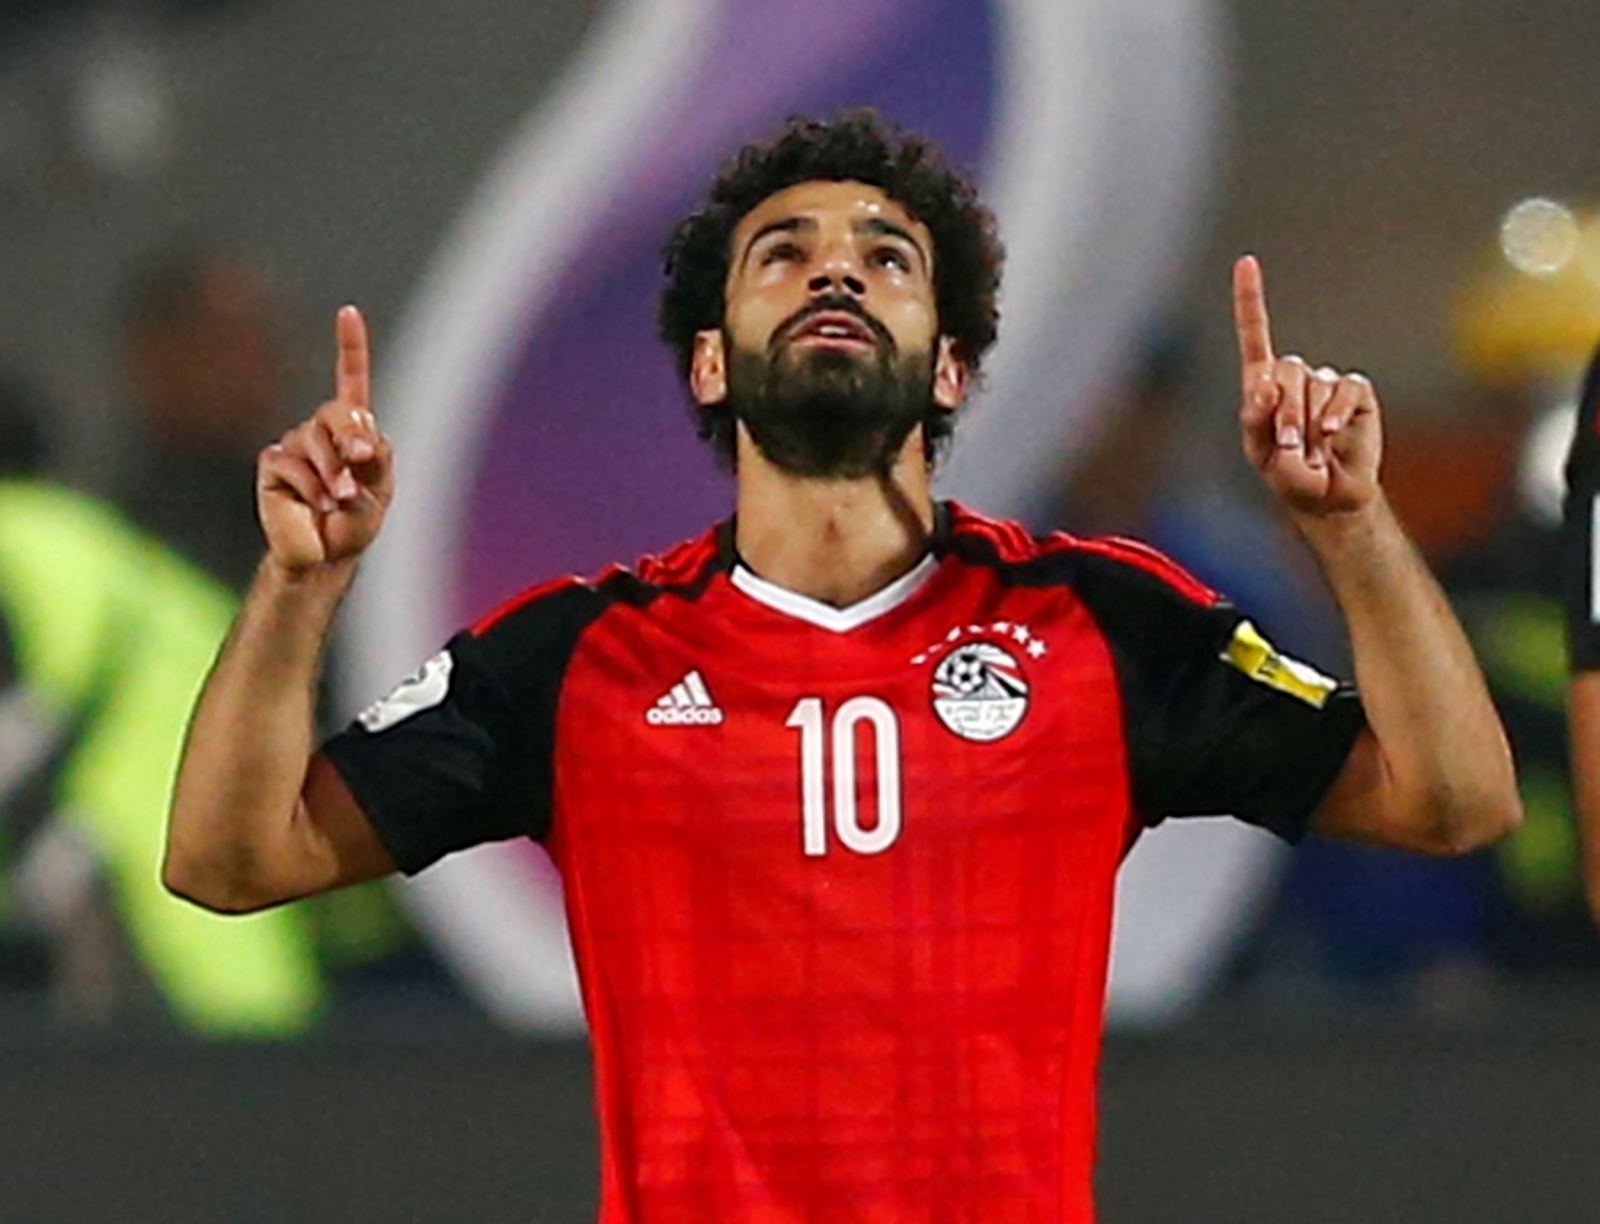 Mohamed Salah to Real Madrid? Egypt legend Mido backs